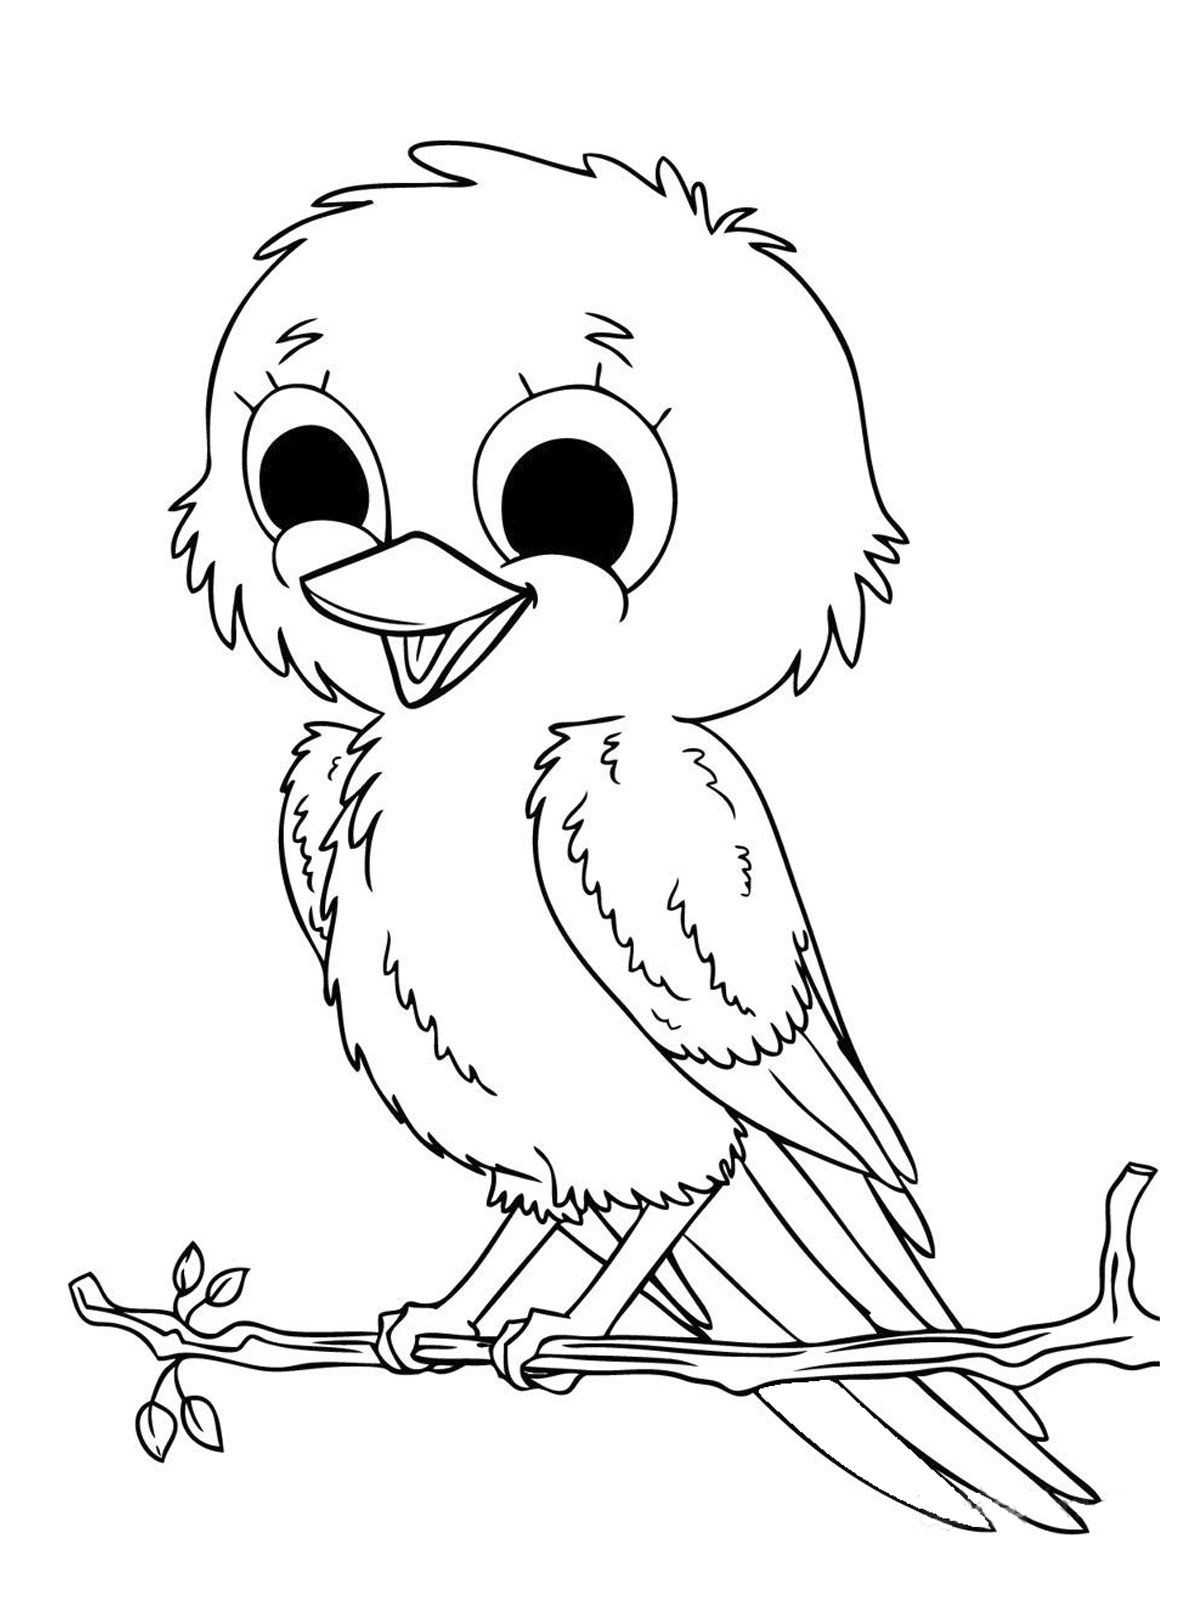 coloring pages disney animals bambi friend owl coloring pages bambi friendowl owl disney coloring animals pages